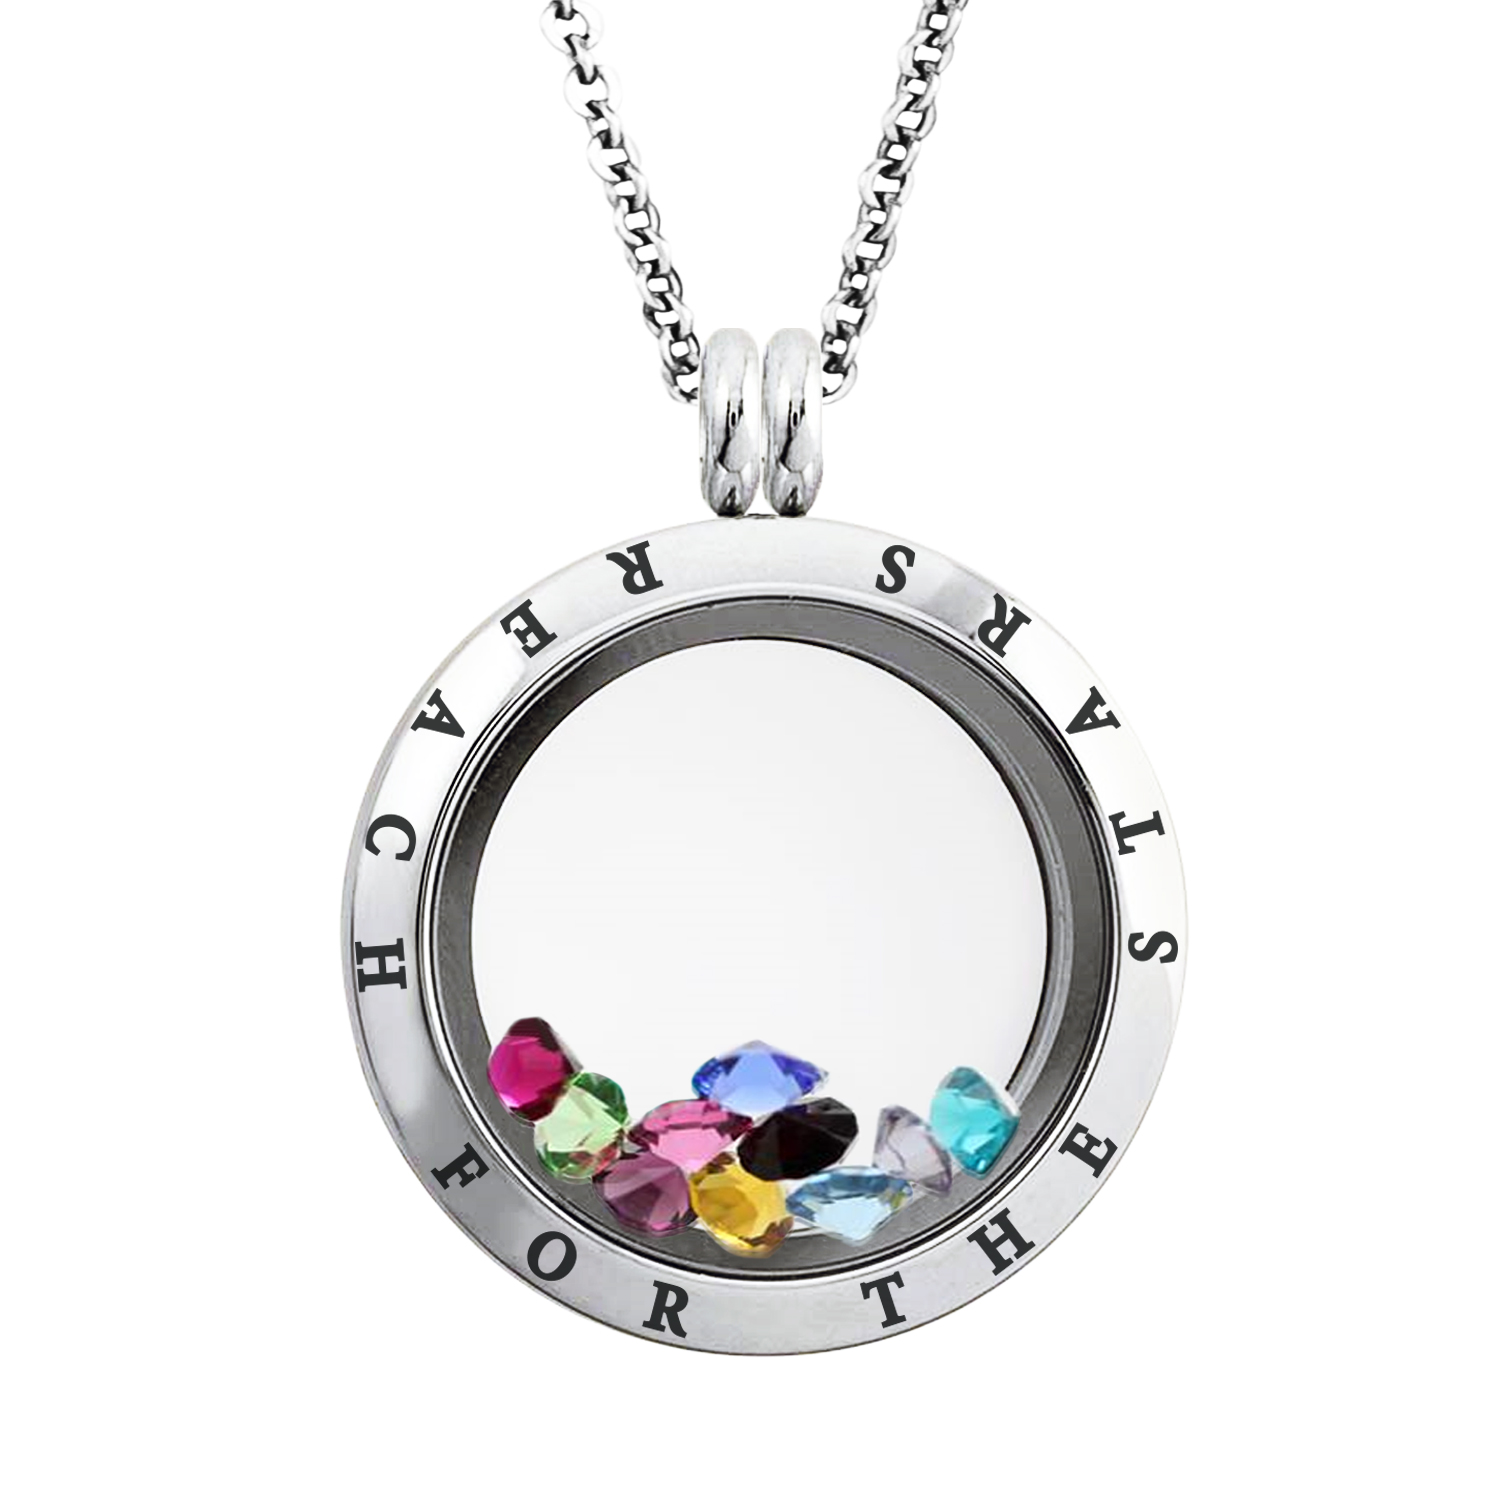 25 MM Stainless Steel Reach for the Stars Engraved Floating Glass Charm Locket Pendant Necklace